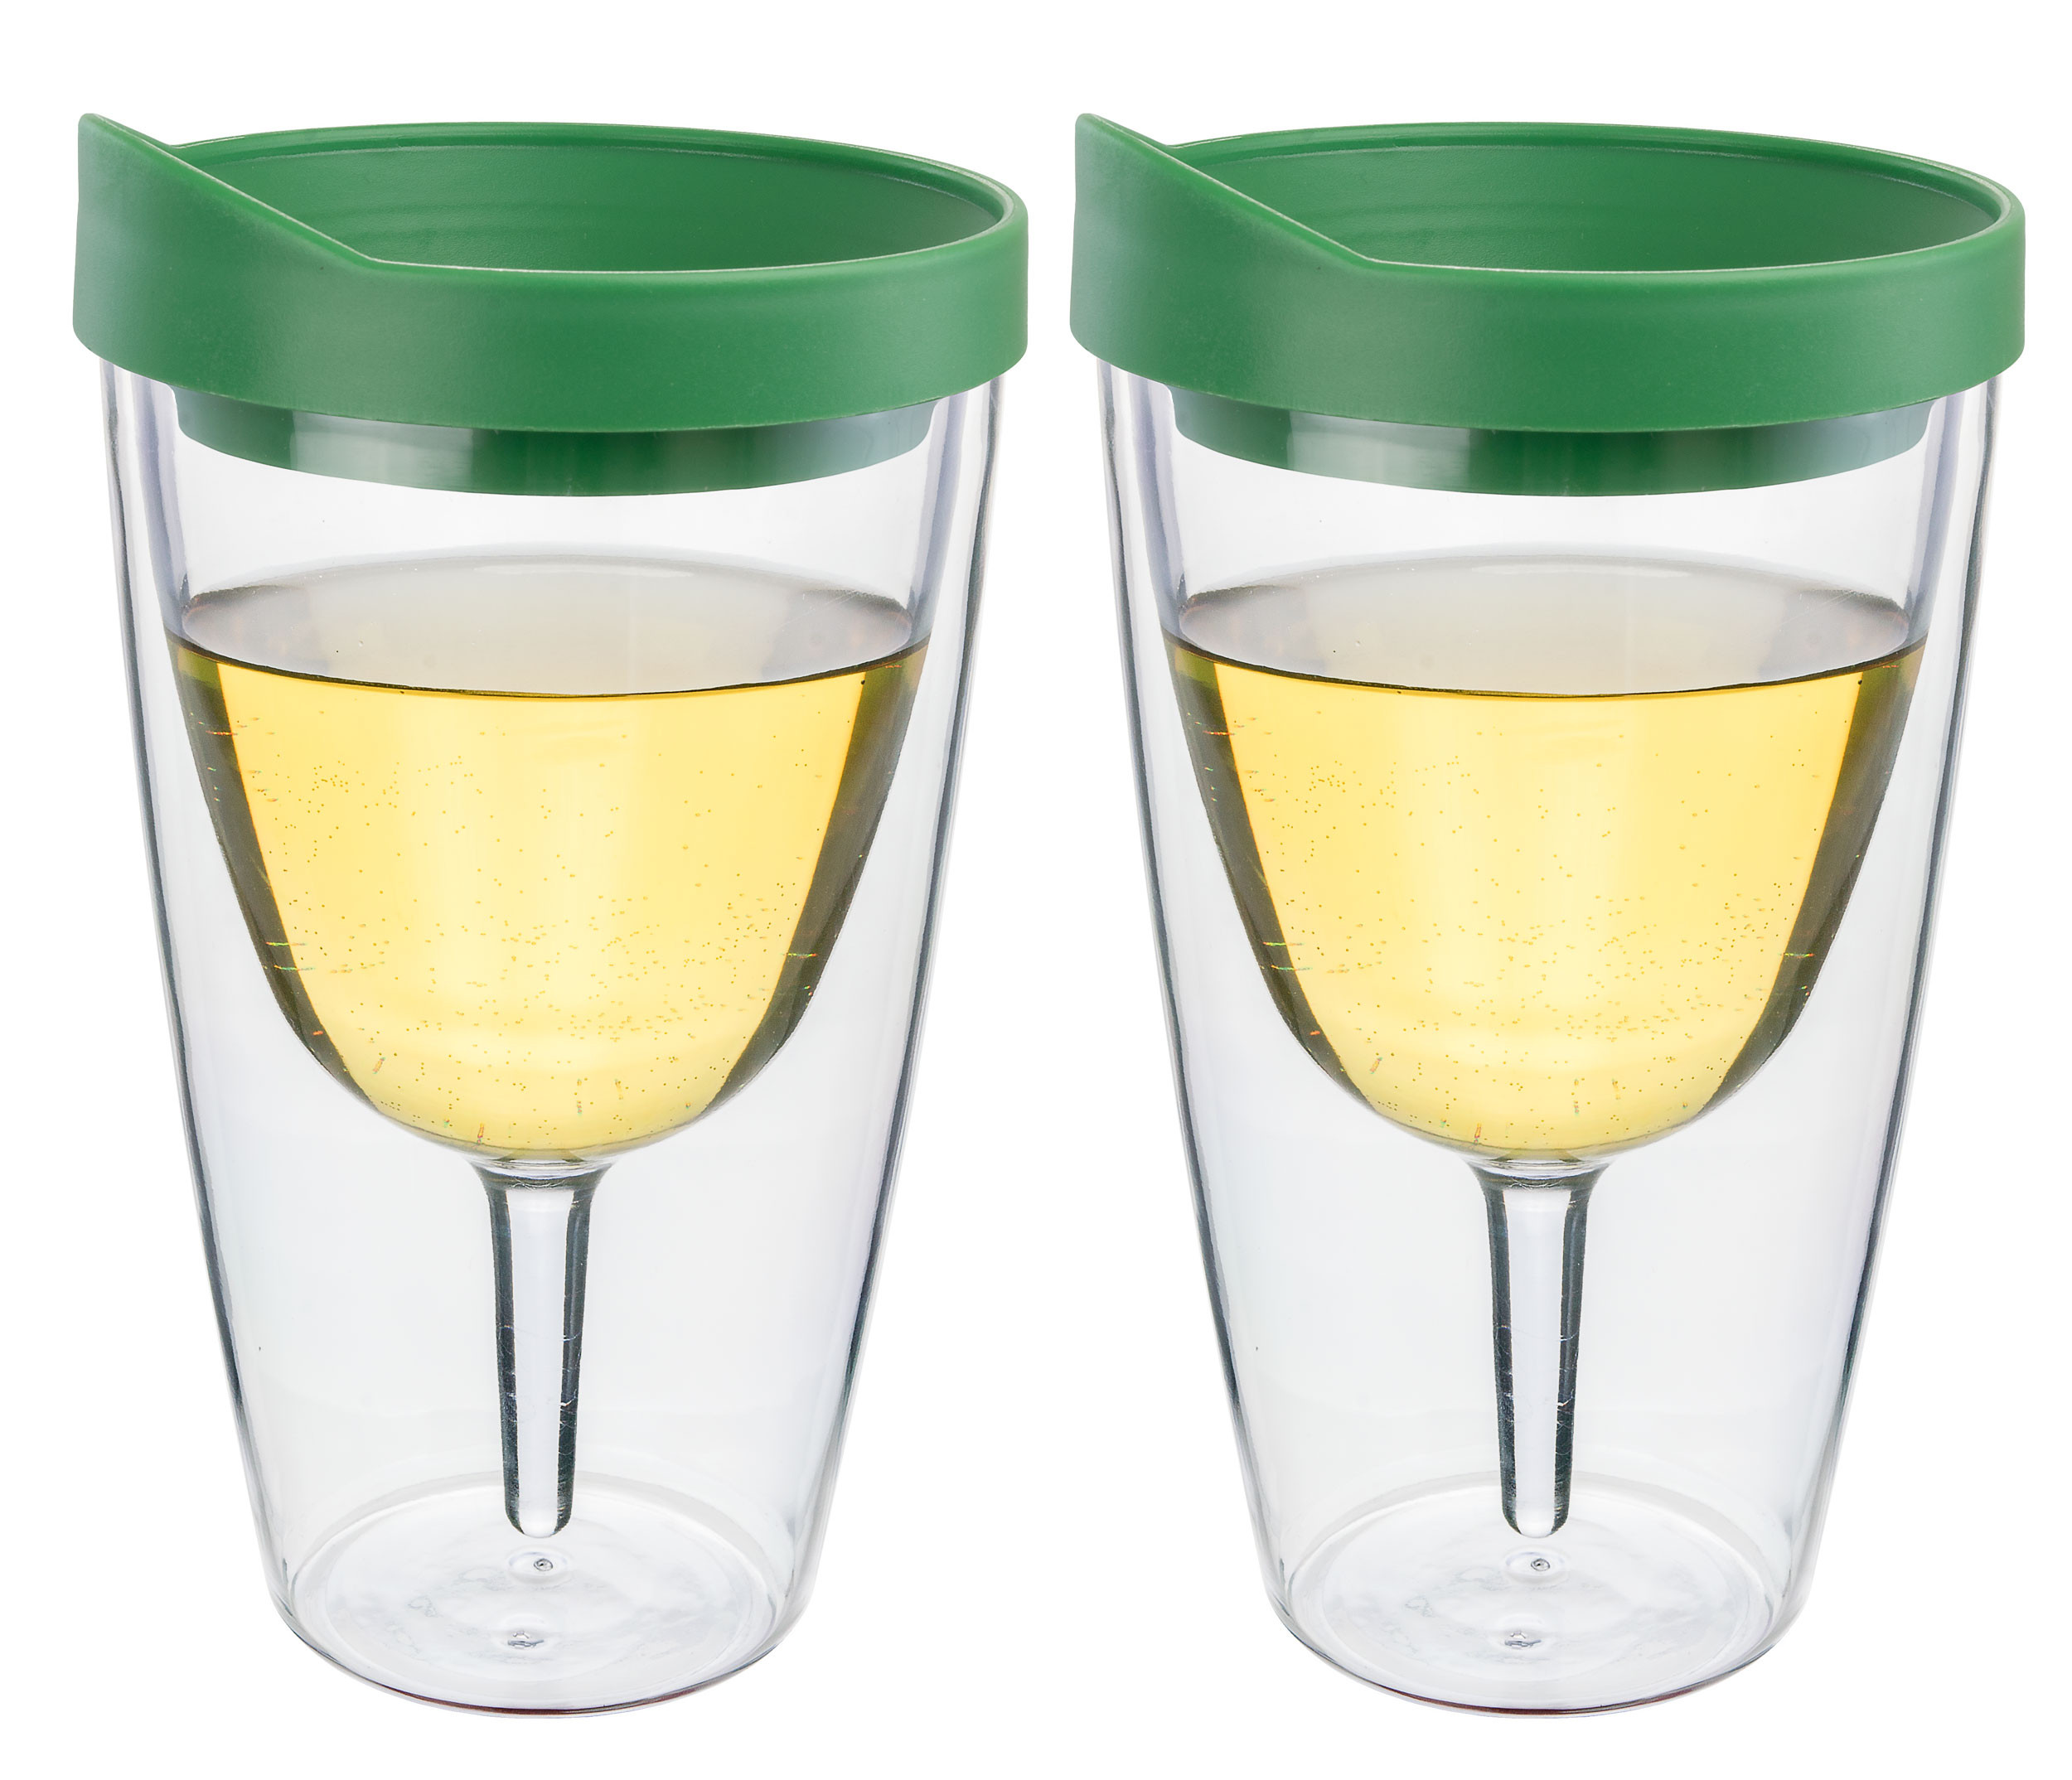 Verde Green Insulated Wine Tumbler - Double Wall Acrylic 2 Pack